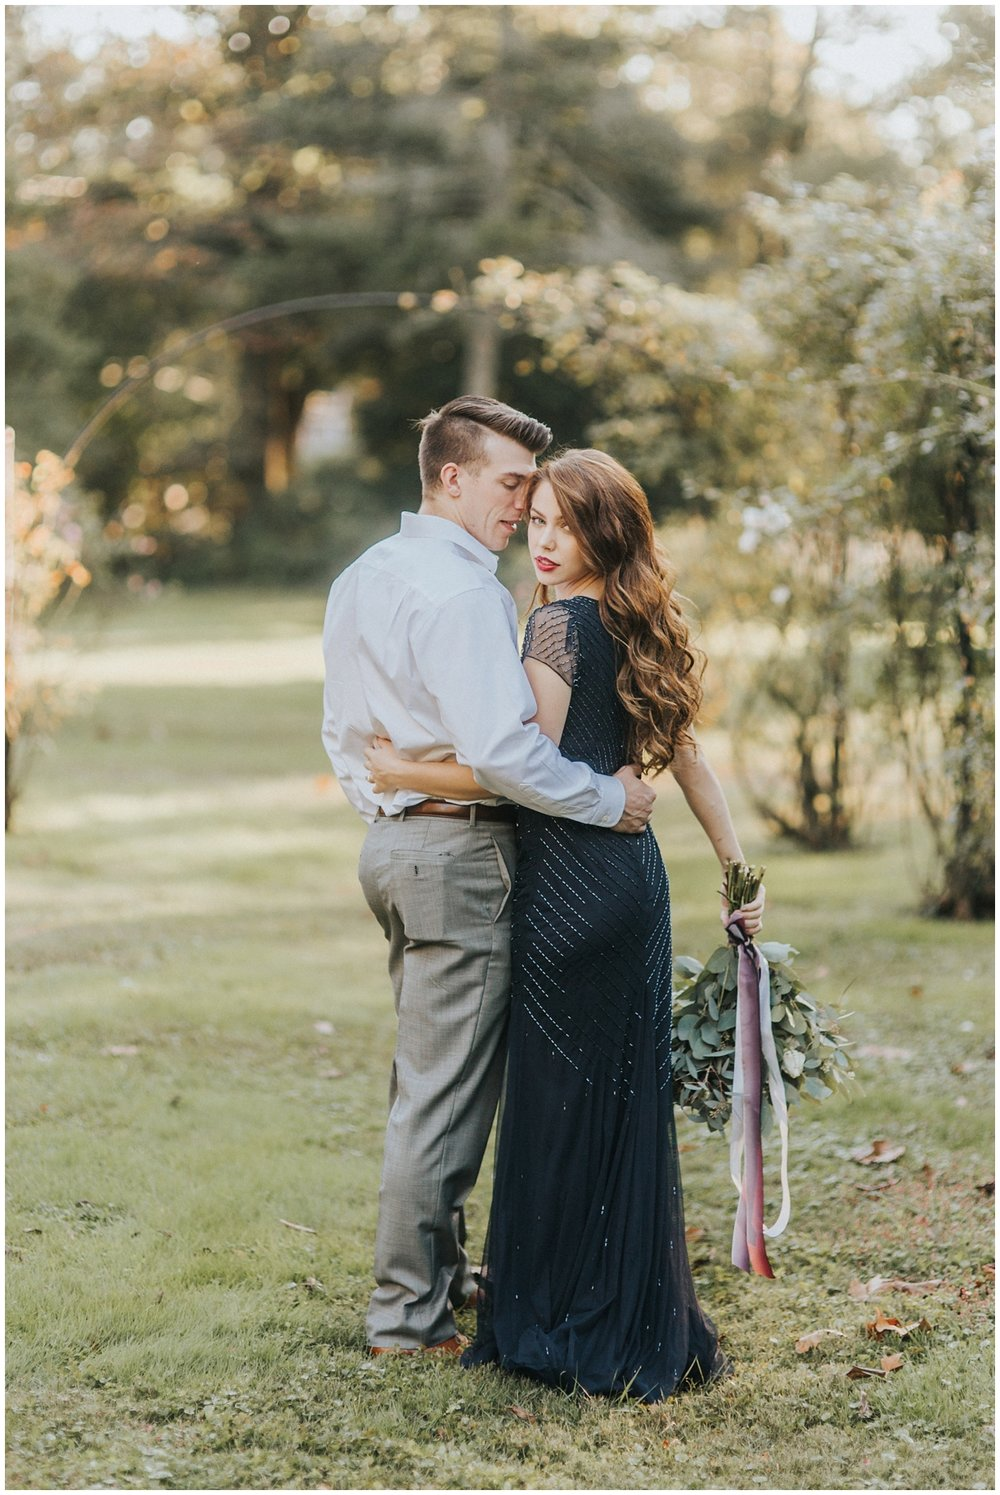 Glen_Foerd_Styled_Wedding_Session_0003.jpg